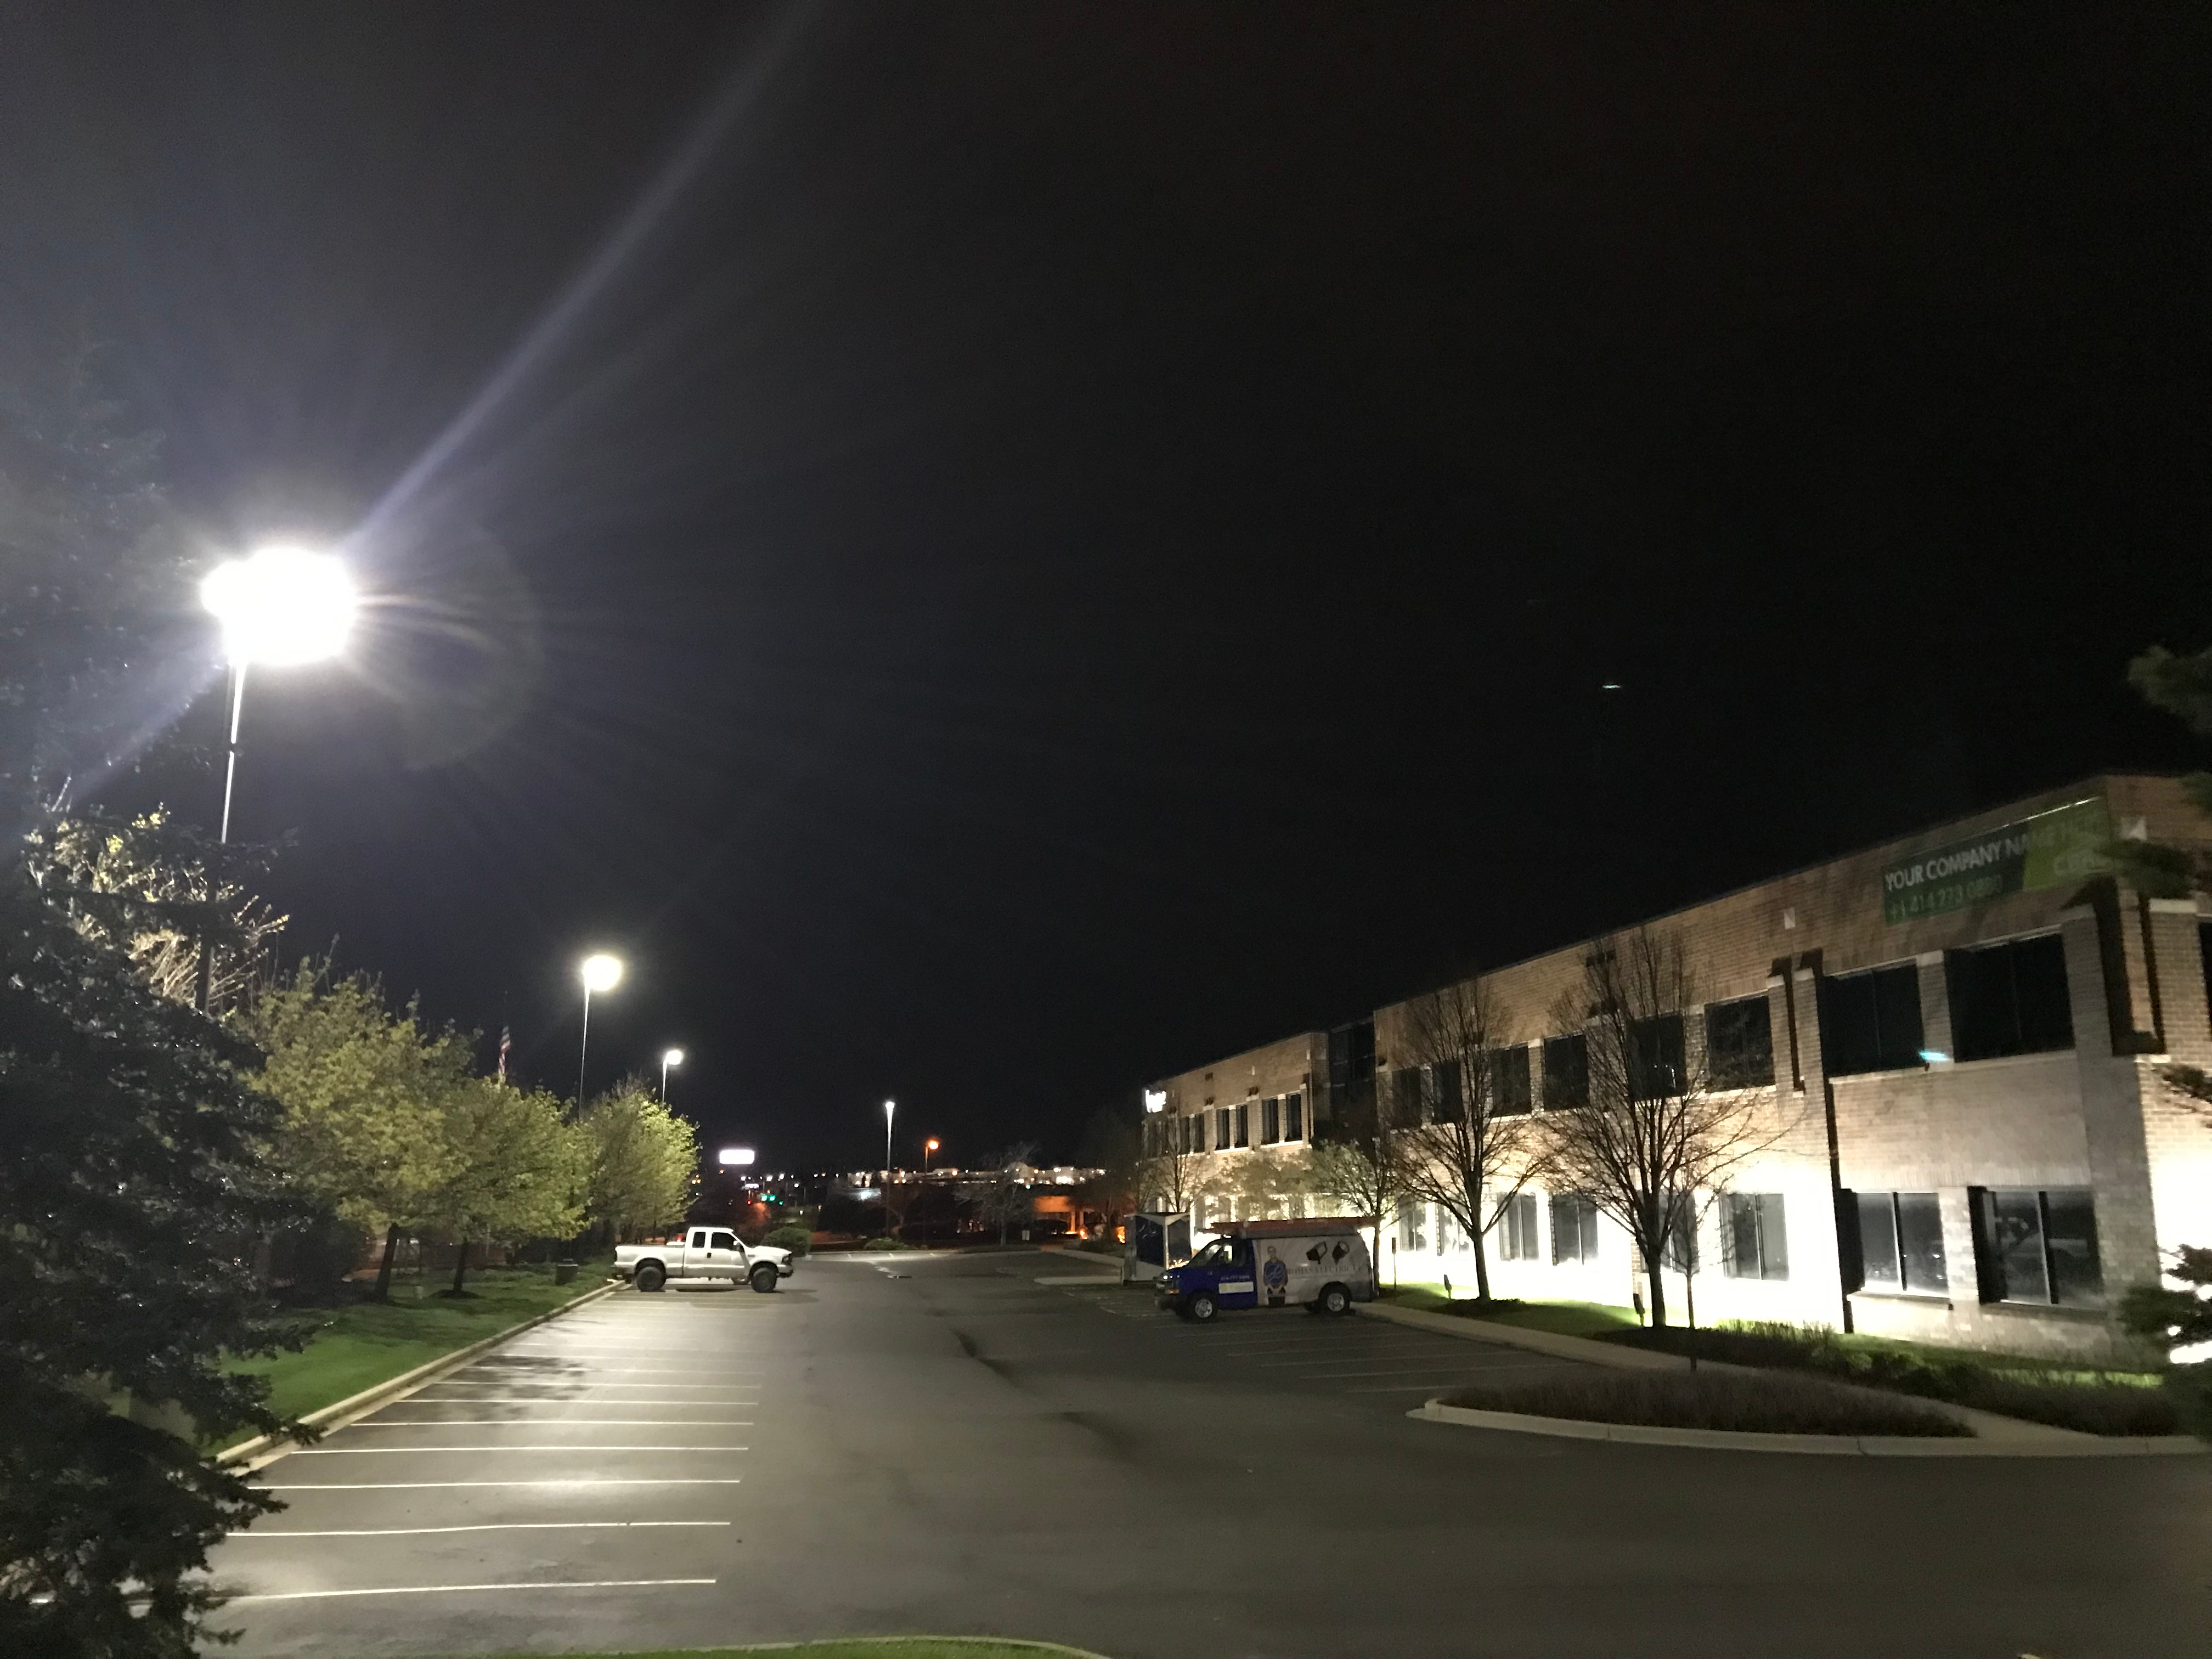 Exterior shot of a commercial building at night, including the building's parking lot.